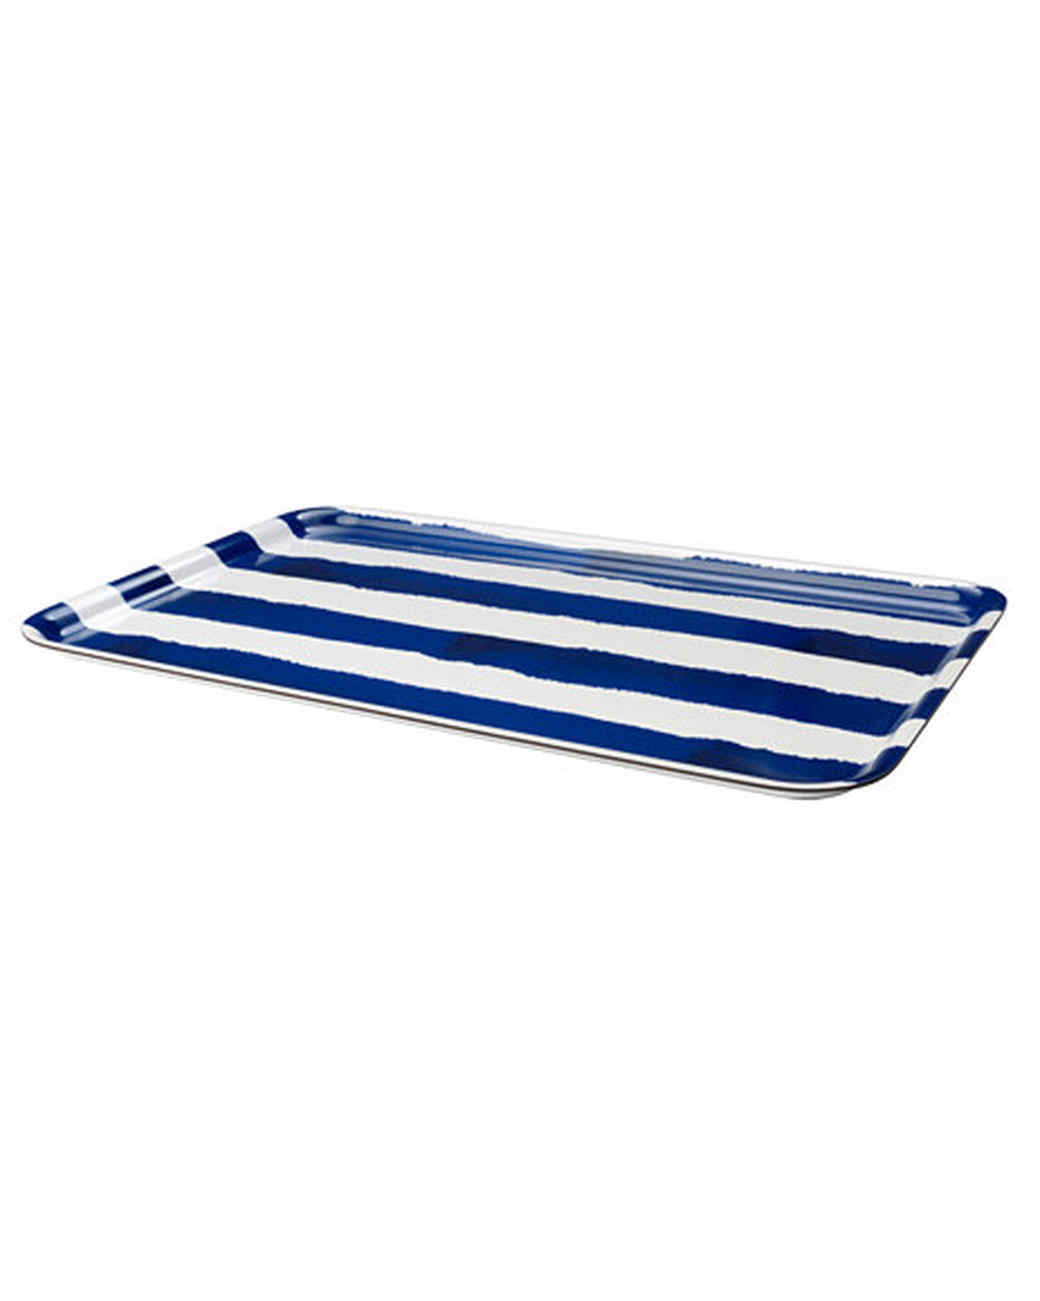 ikea-striped-tray.jpg